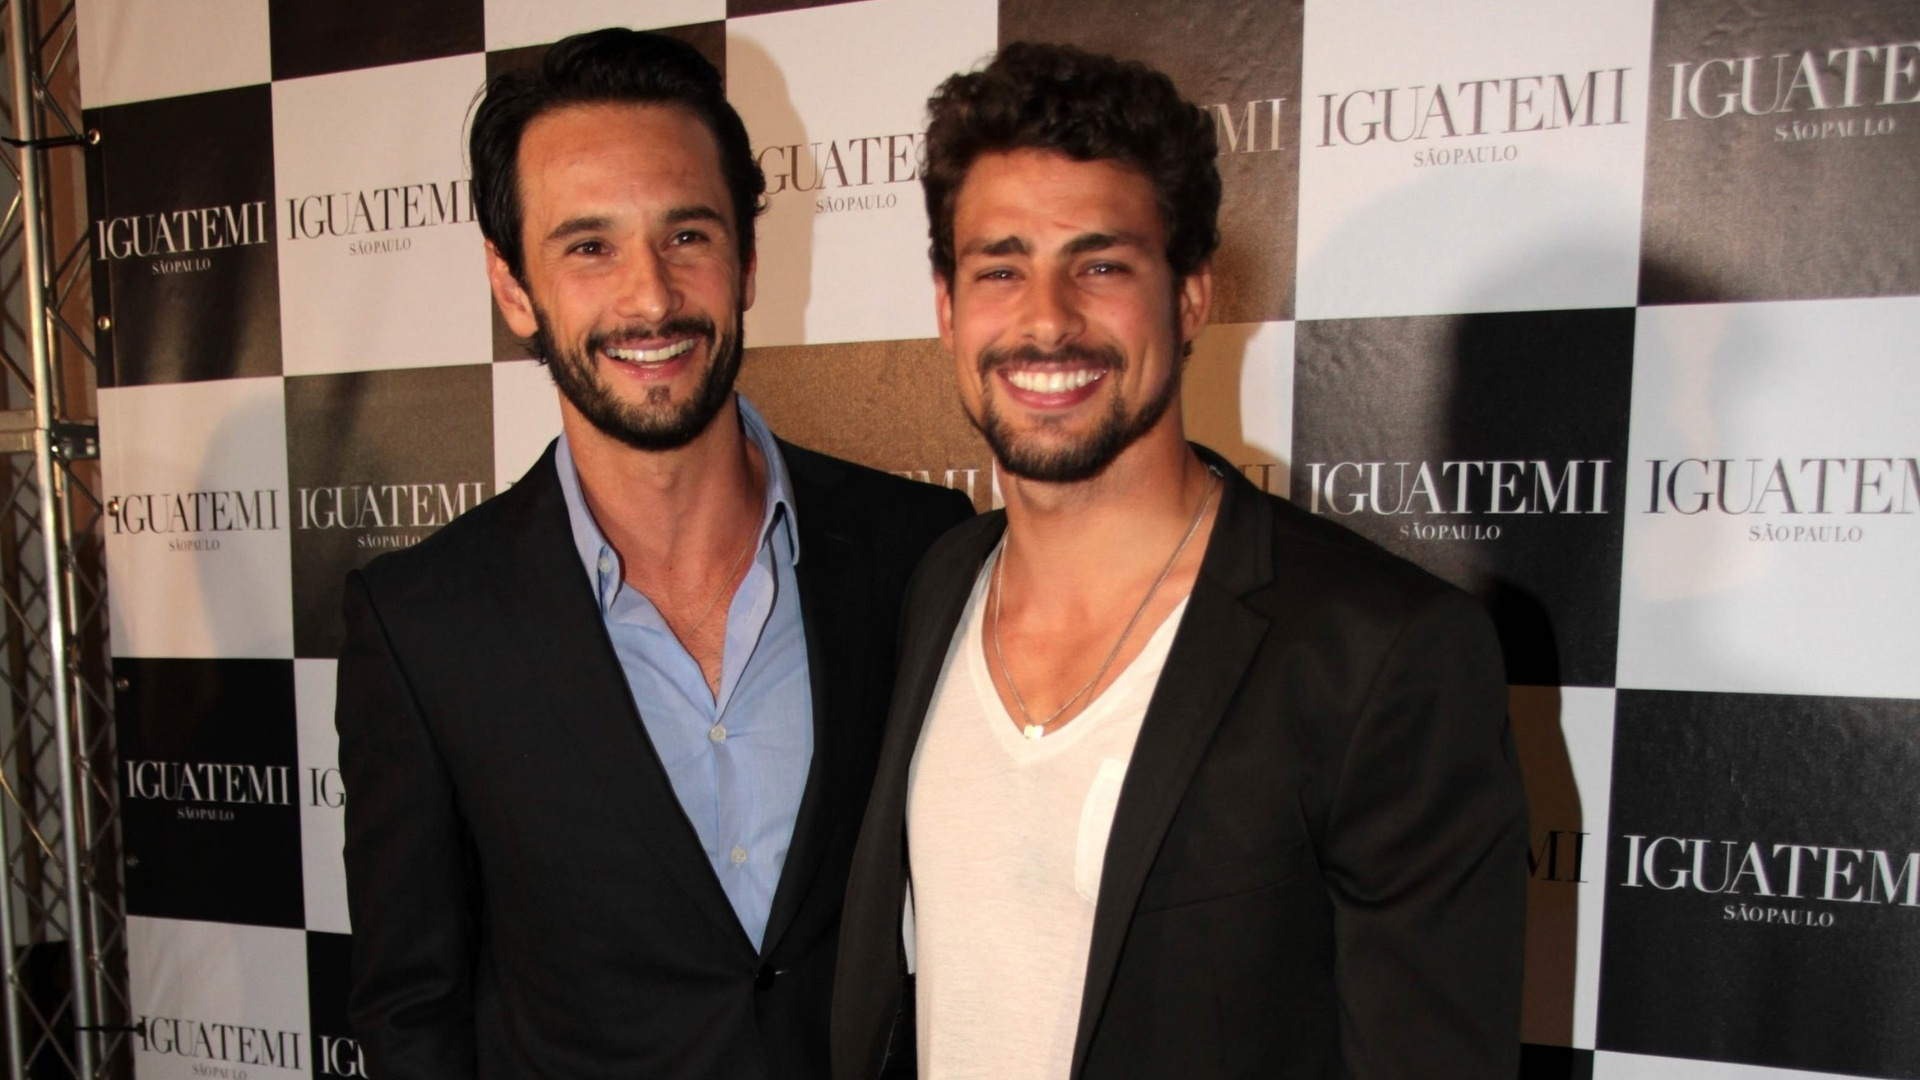 Rodrigo Santoro e Cau Reymond na pr-estreia do longa 